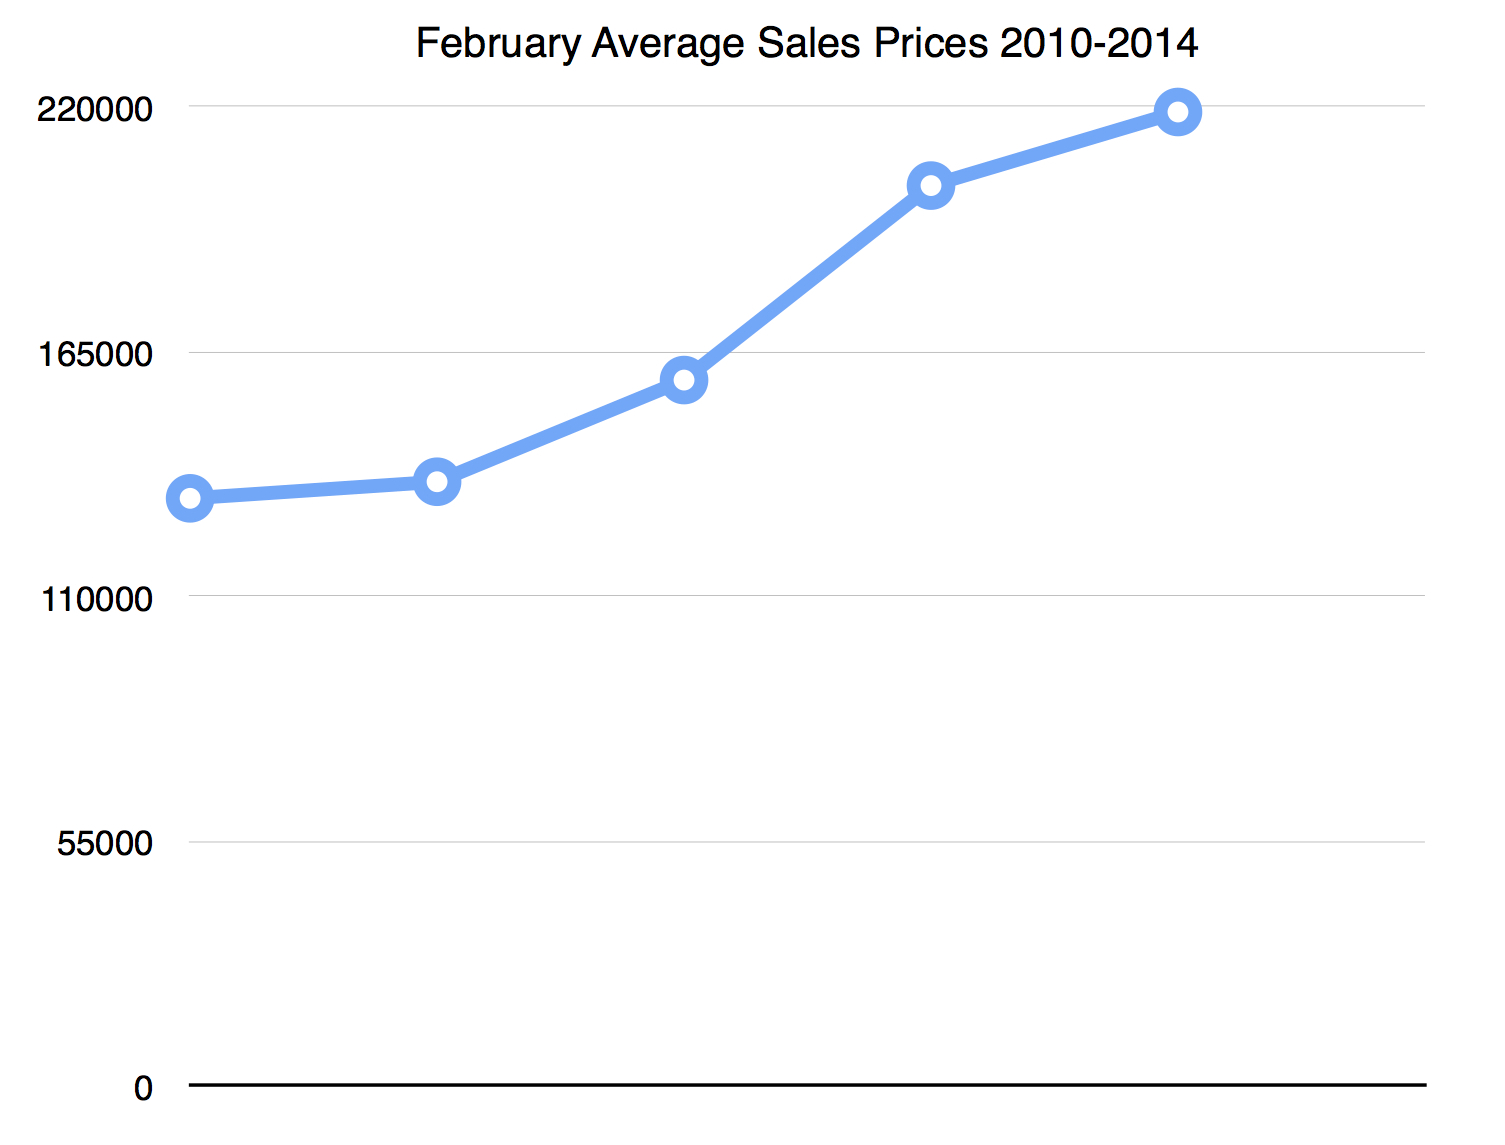 February Average Sales 2010-2014